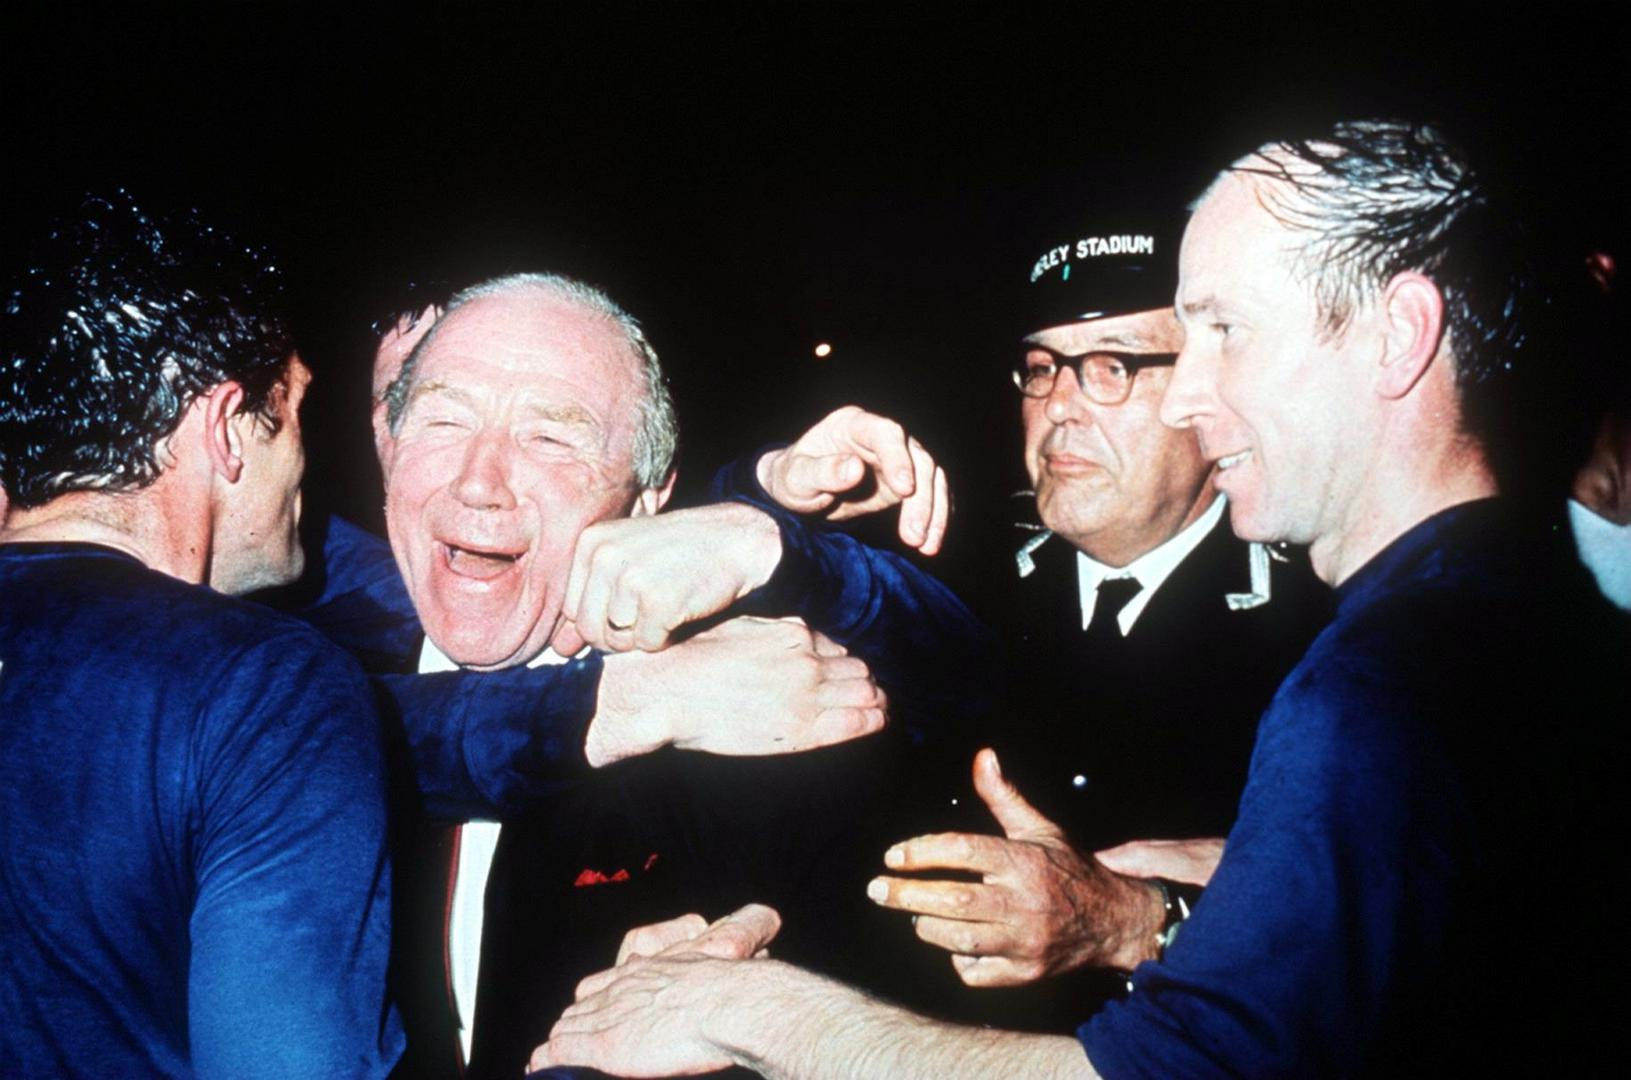 Matt Busby and Bobby Charlton after the 1968 triumph.